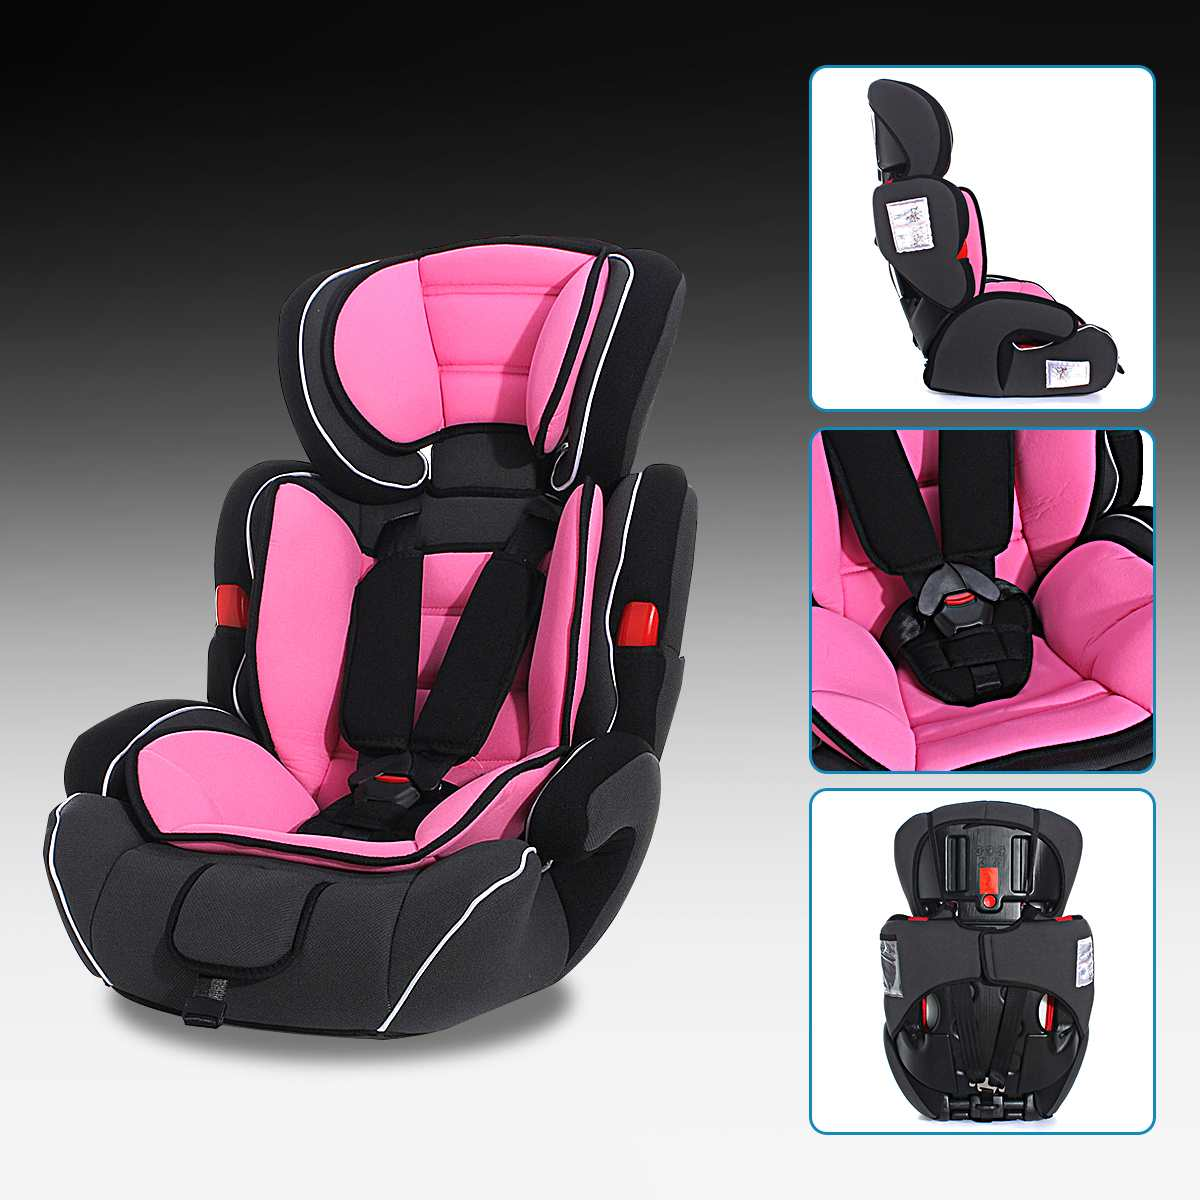 Car Baby Increased Seat Convertible Baby Kids Children Car Seat & Booster For 9 36kg Child Light Pink